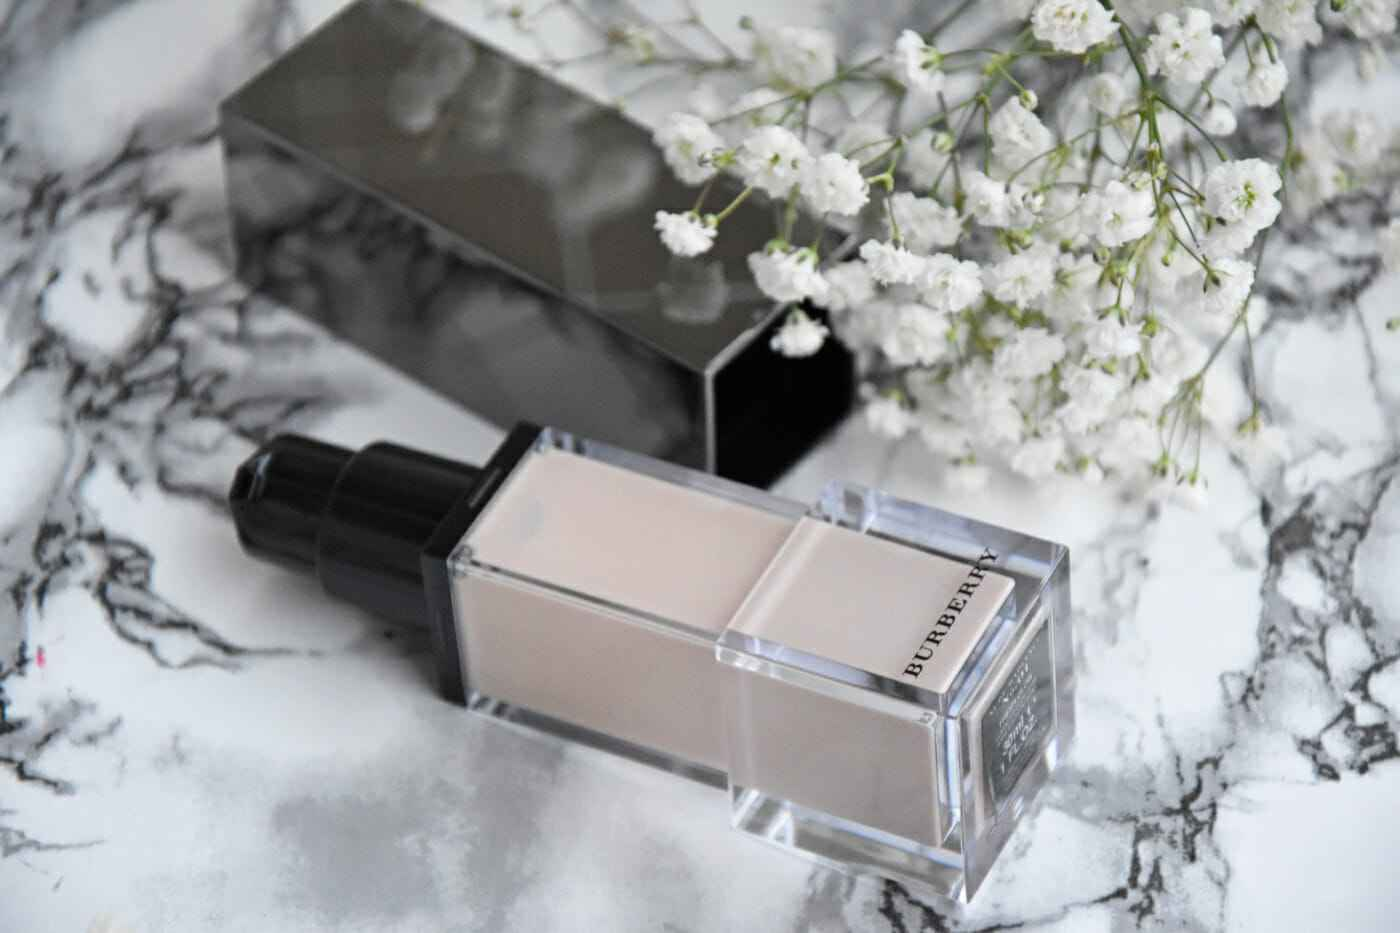 Nude Radiance Foundation Burberry